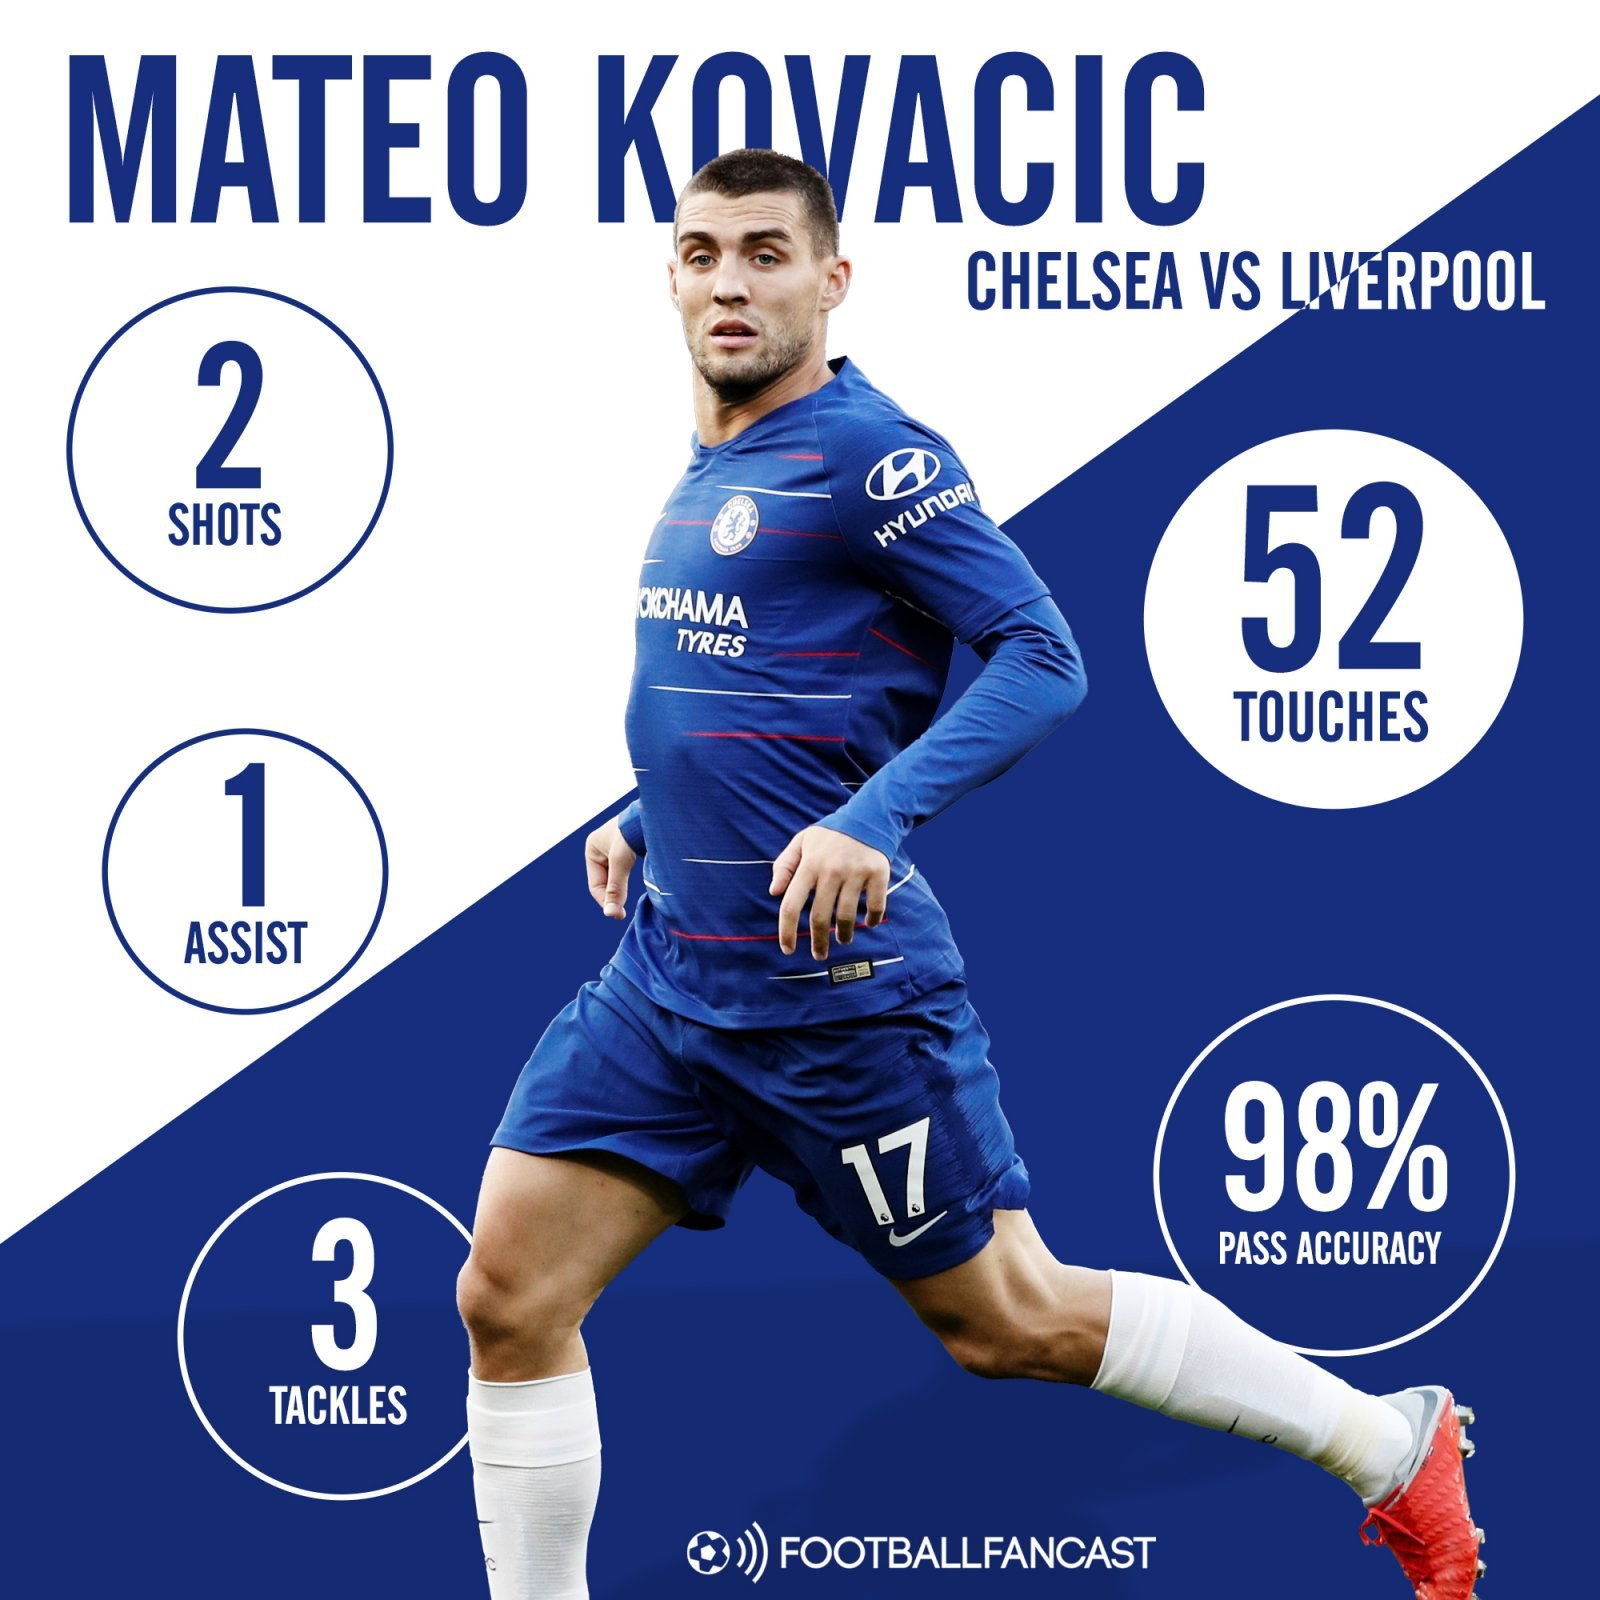 Mateo Kovacic's stats from Chelsea's draw with Liverpool